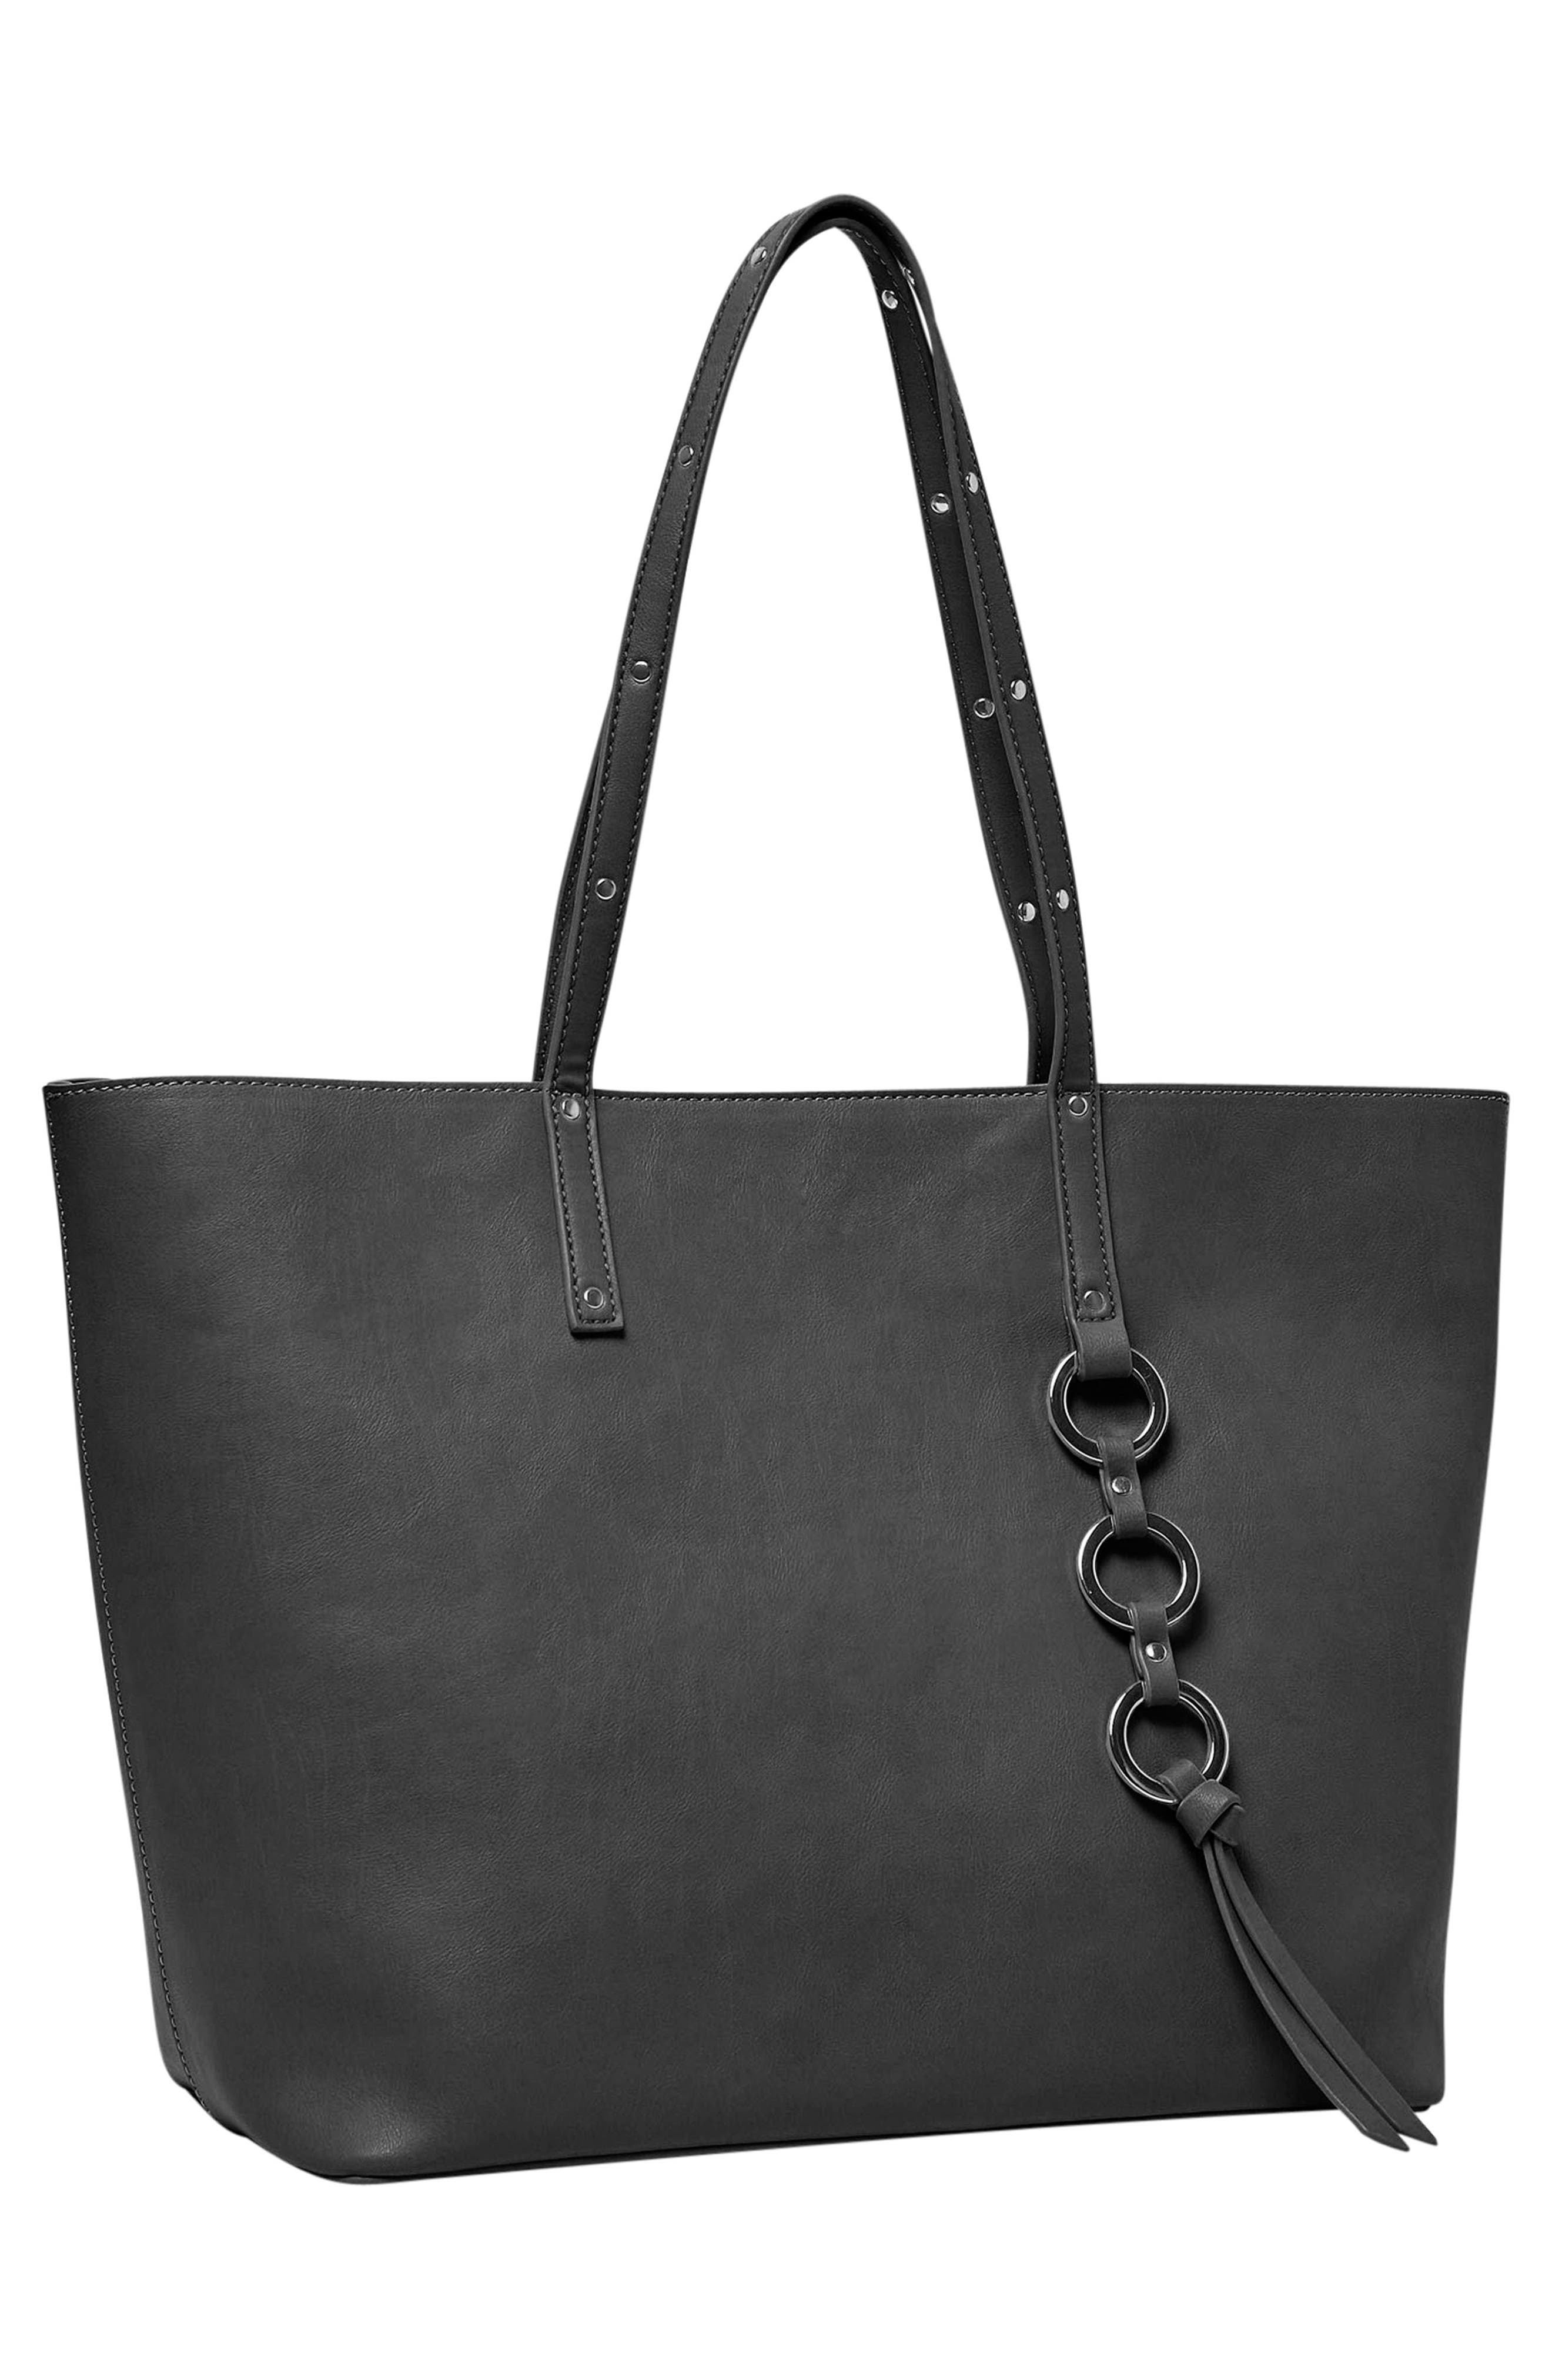 Wild Fire Vegan Leather Tote,                             Alternate thumbnail 10, color,